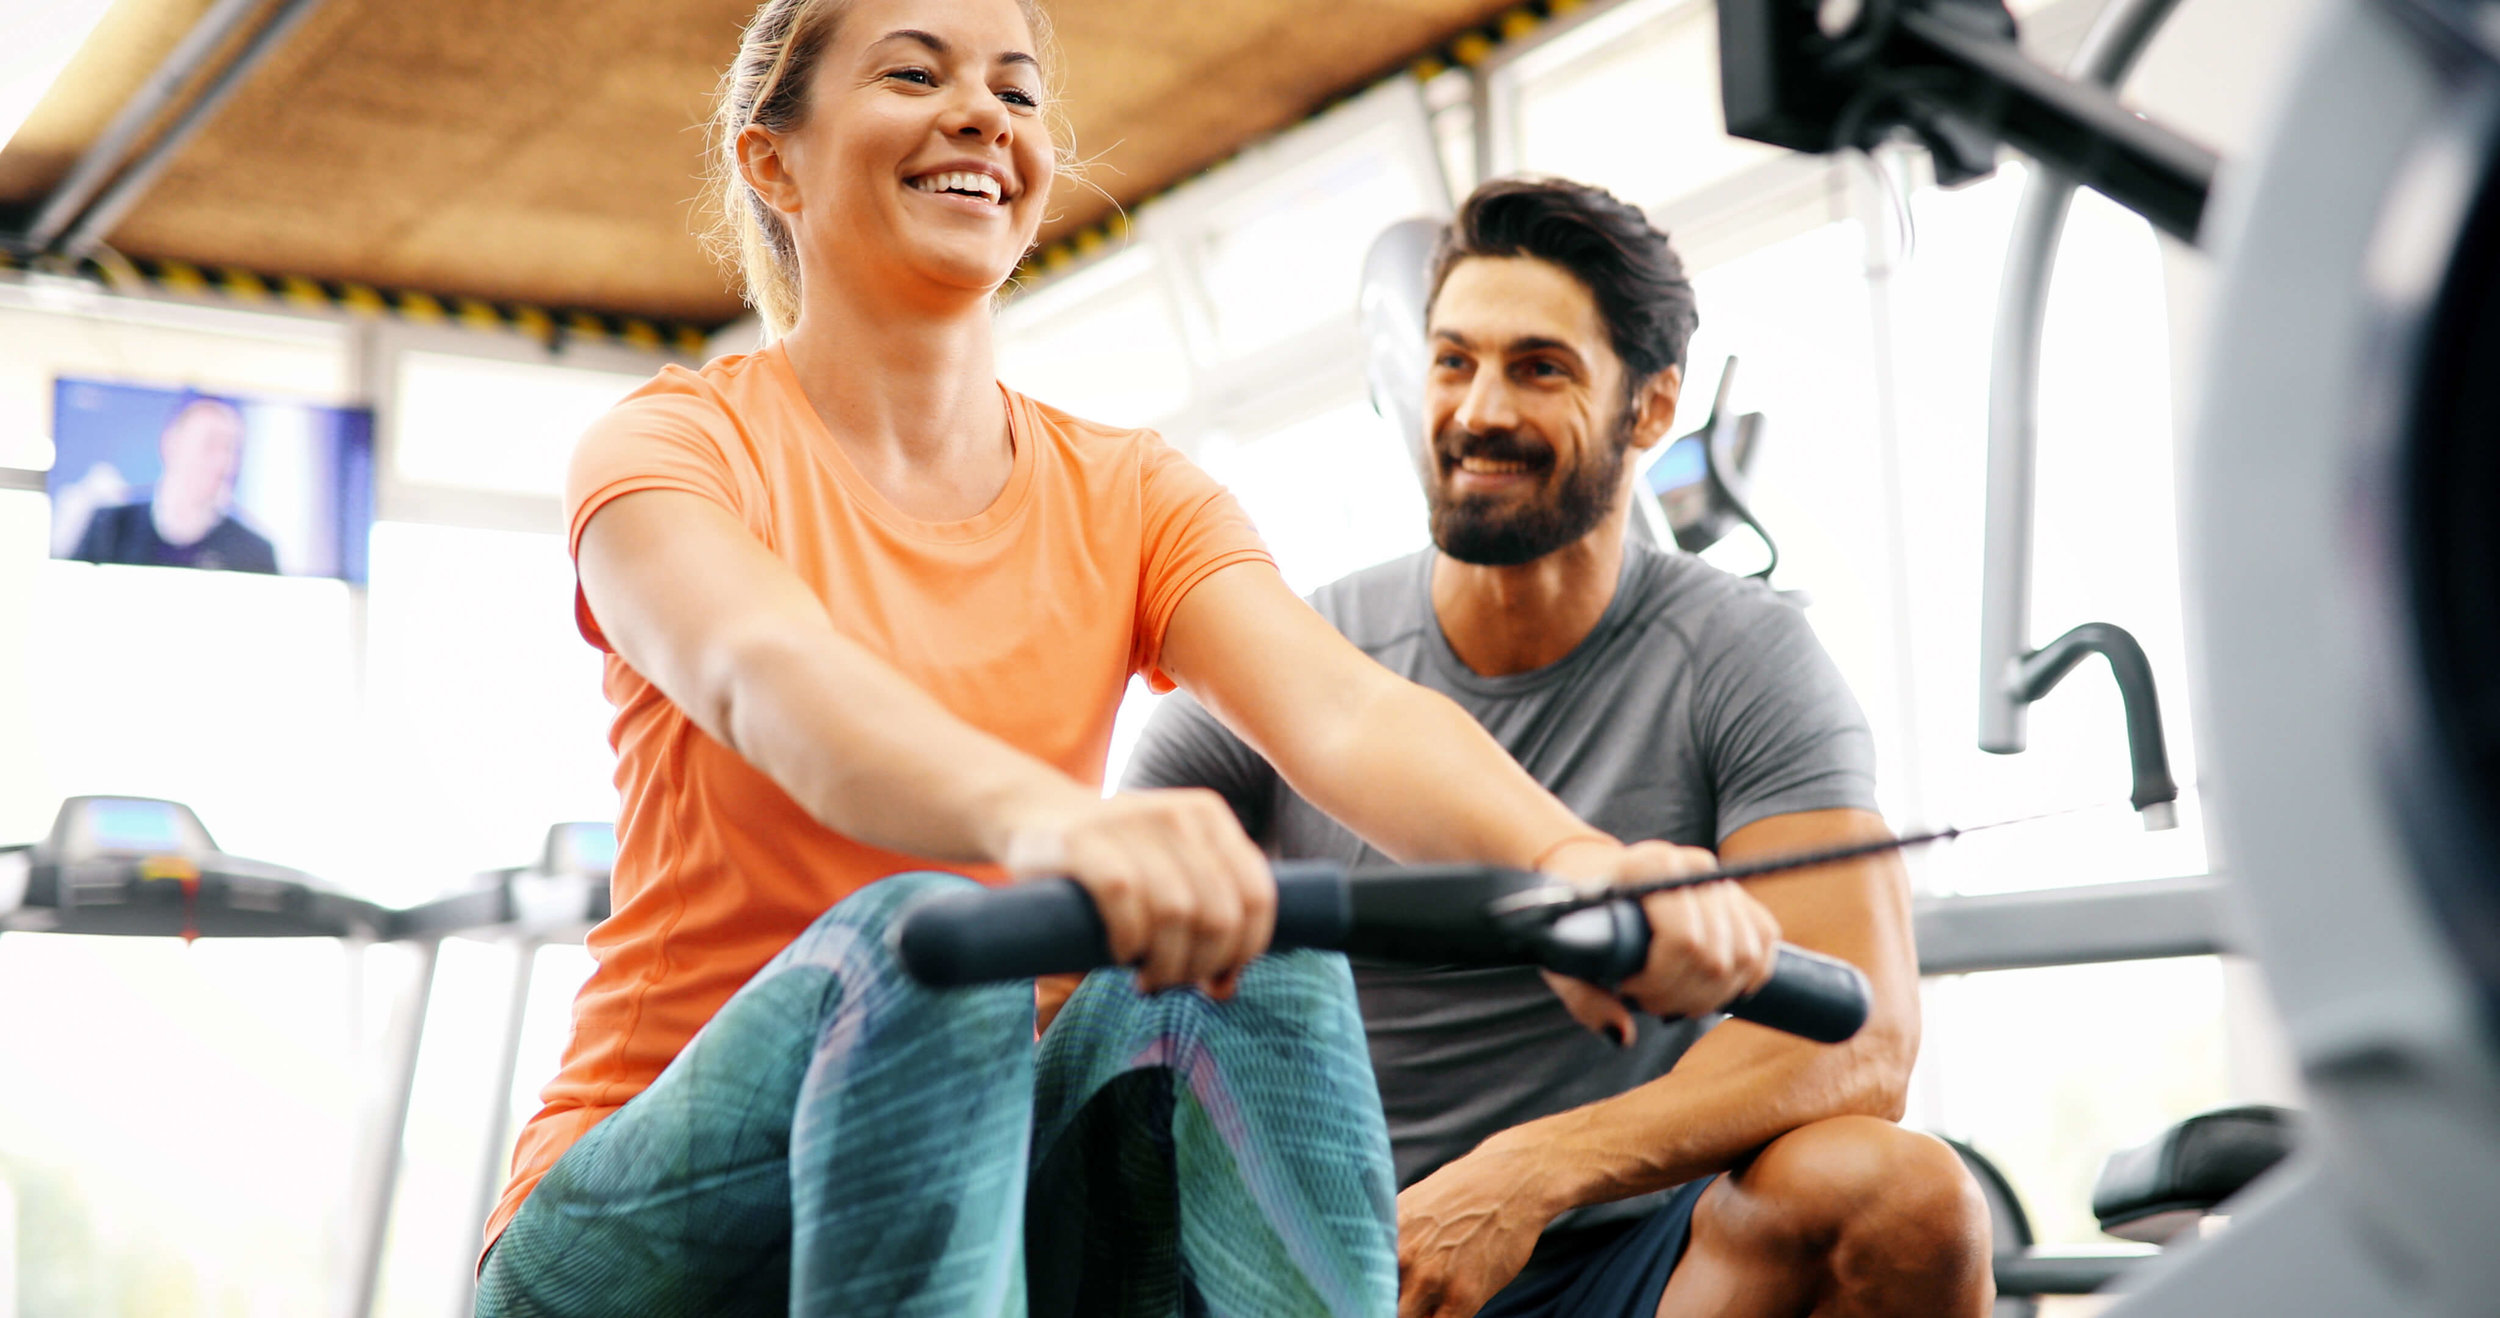 Personal Training - 30 and 60 minute sessions tailored to your fitness goals.